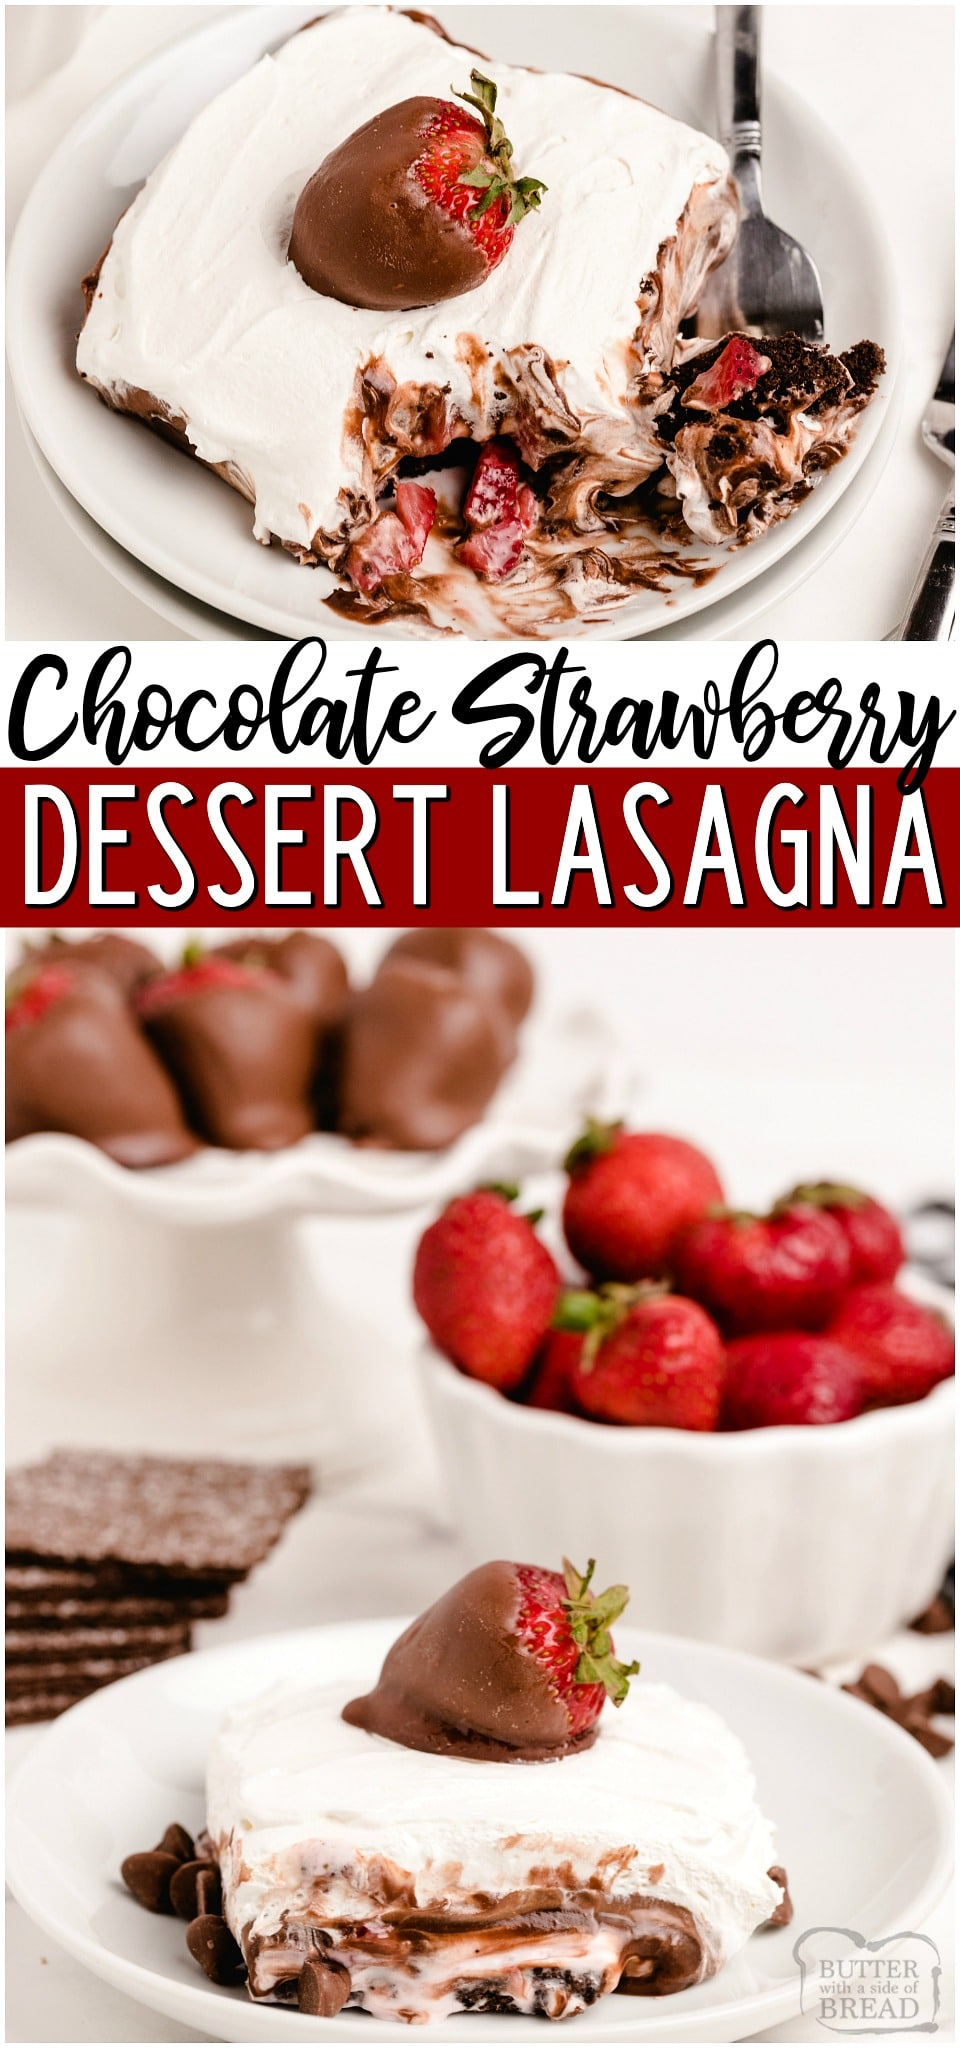 No bake Chocolate Lasagna with Strawberries is a layered pudding dessert filled with chocolate, sweet cream and fresh strawberries! Dessert Lasagna topped with chocolate covered strawberries is perfect for any occasion! #chocolate #strawberry #lasagna #layered #dessert #pudding #recipe from BUTTER WITH A SIDE OF BREAD